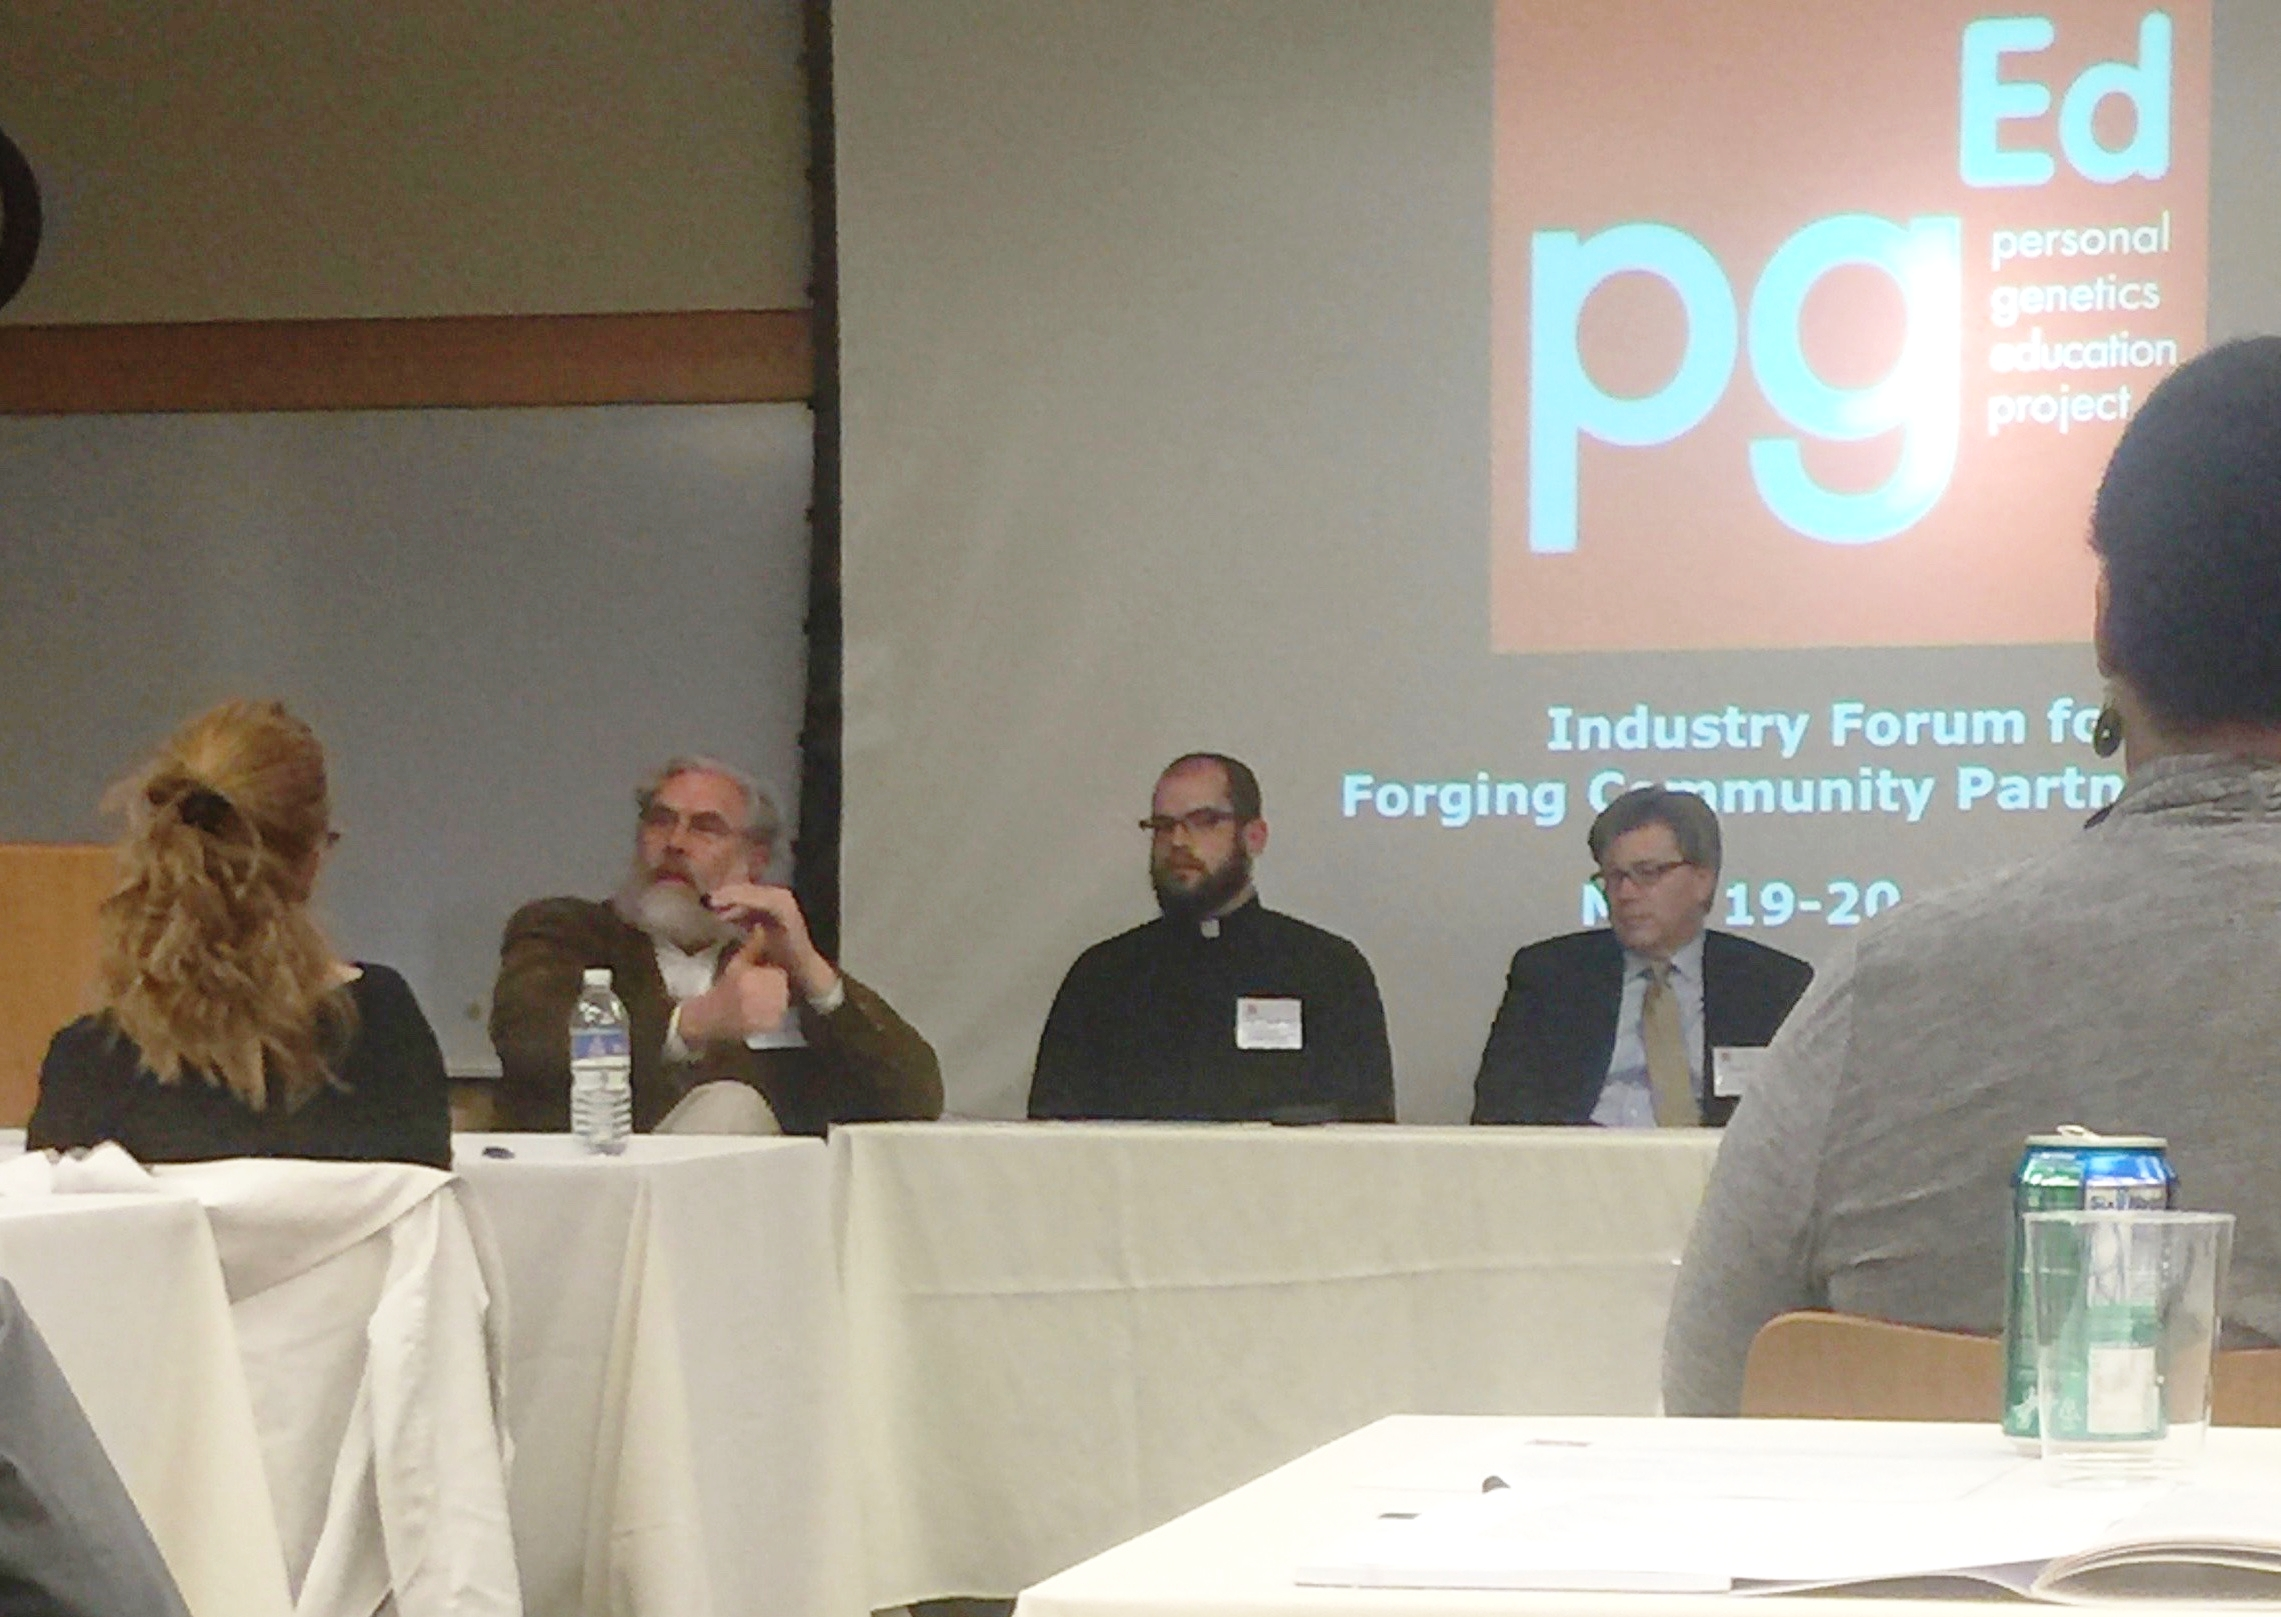 Chad Baldanza, on a panel discussing what it means to be made in the image of God, with leading scientific innovators.